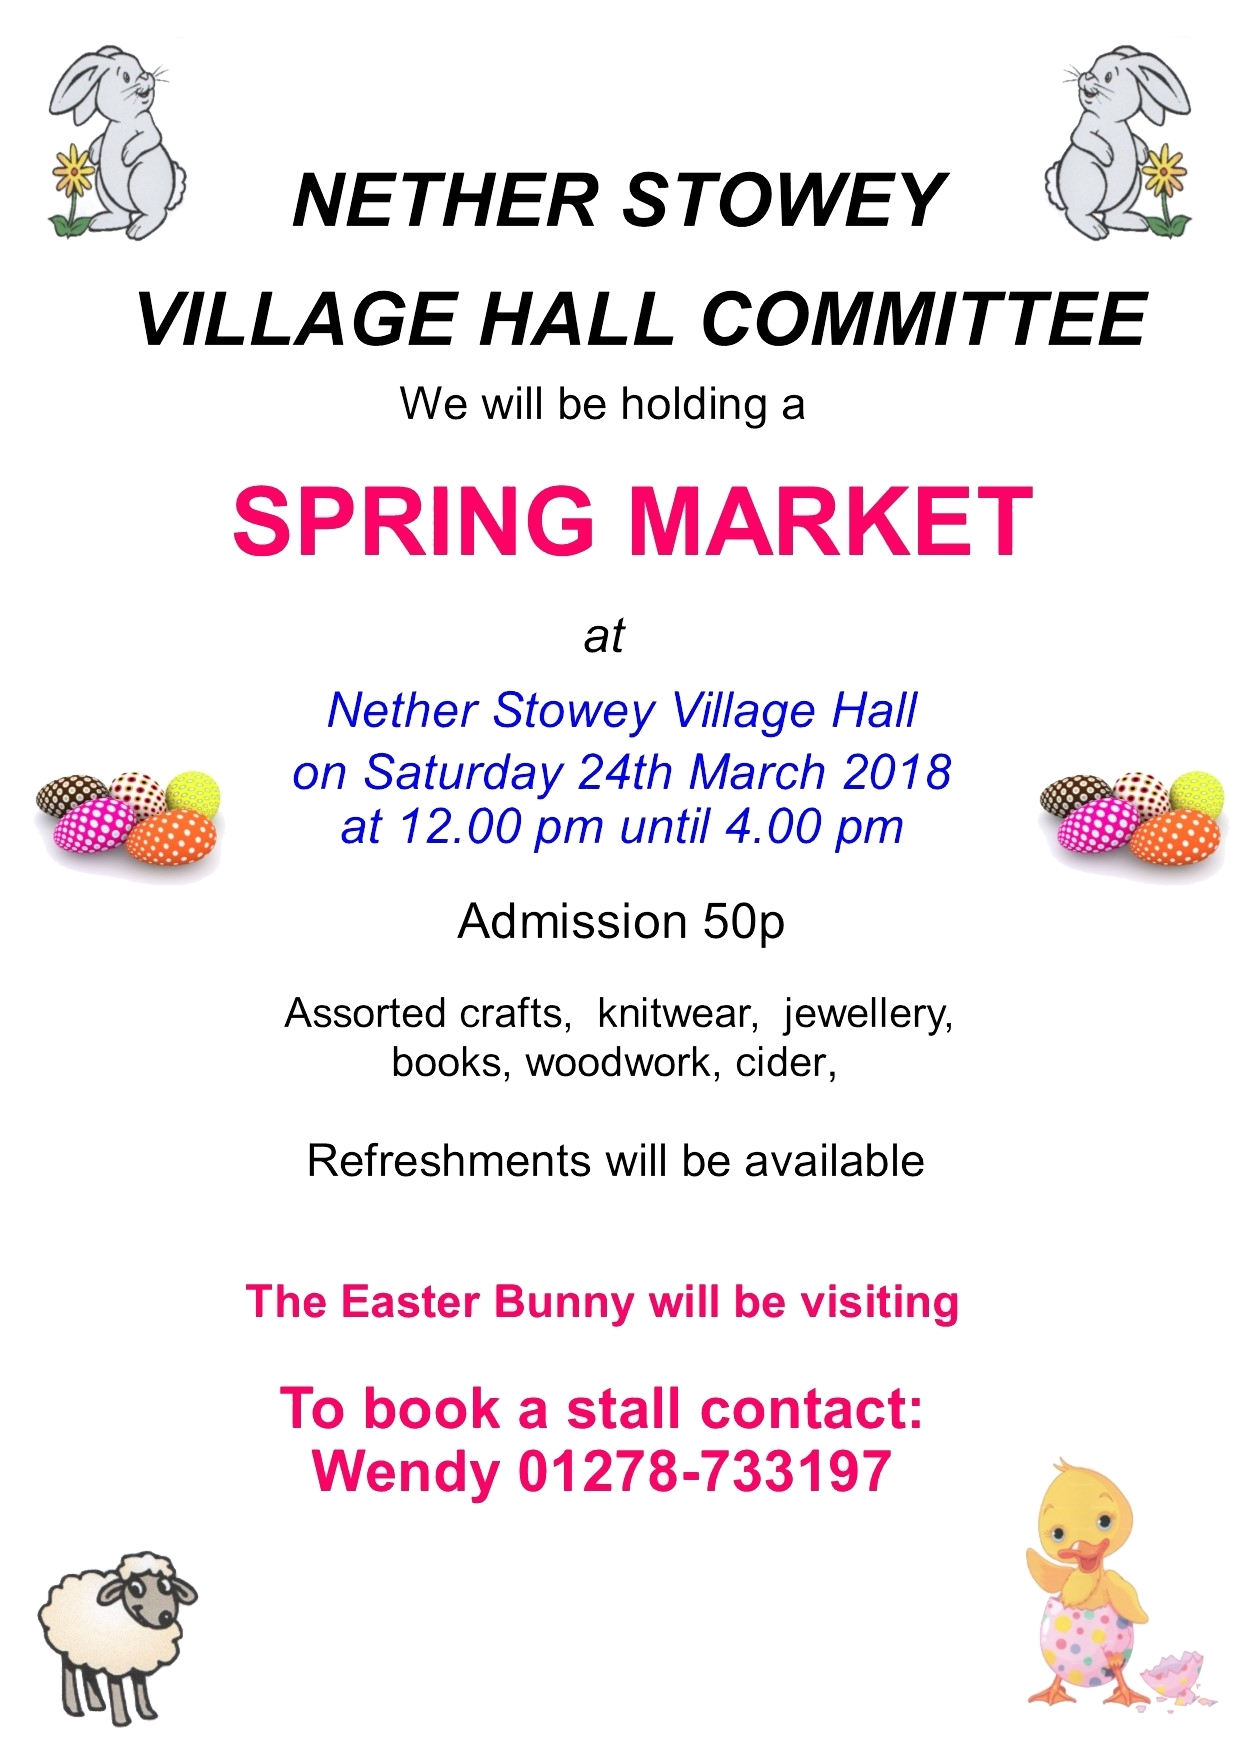 Nether Stowey Village Hall Committee Spring Market @ Nether Stowey Village Hall | Nether Stowey | England | United Kingdom